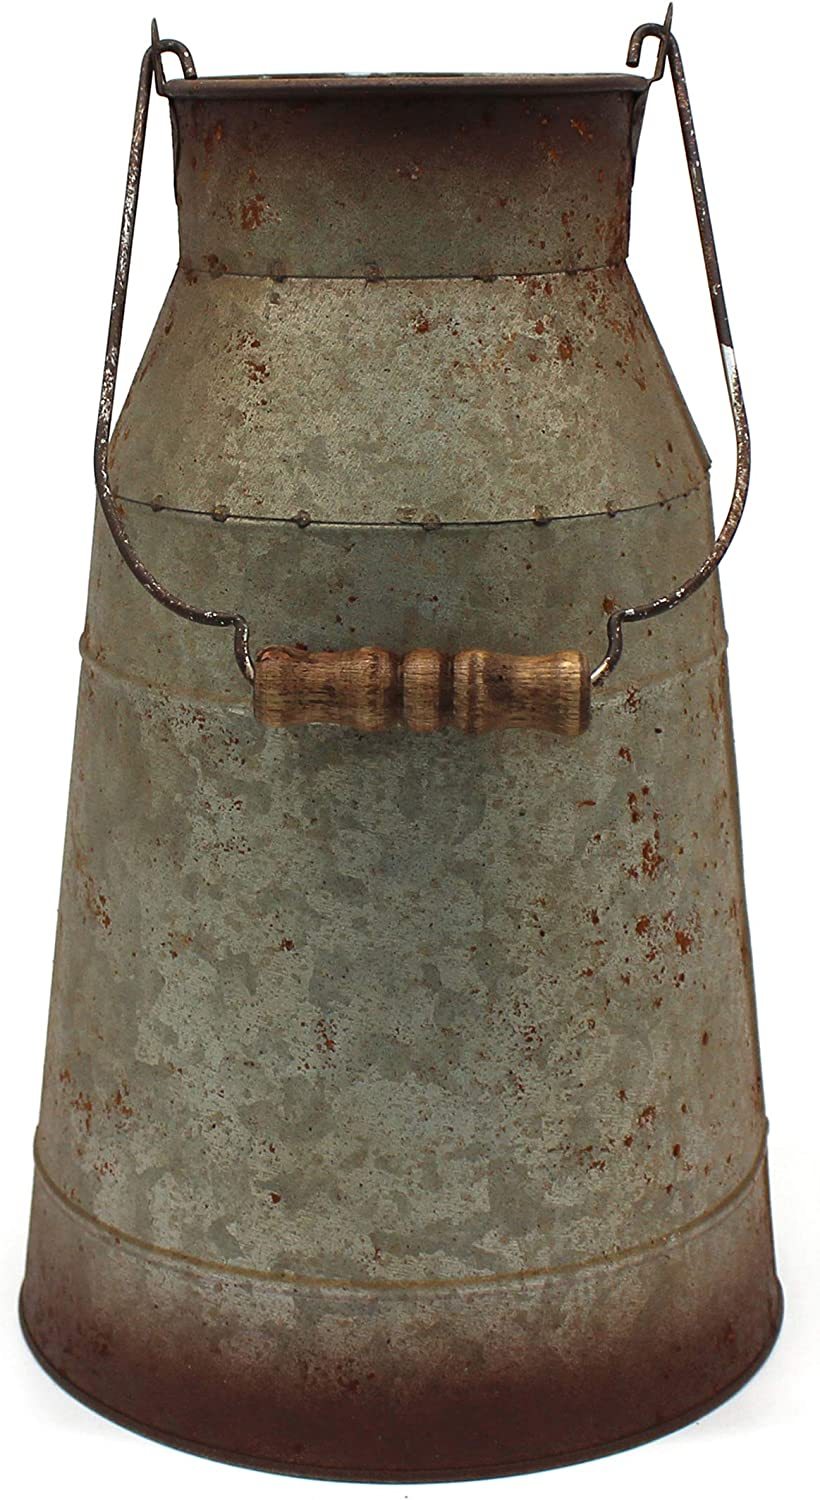 CVHOMEDECO. 10 Inch Galvanized Metal Milk Can with Wooden Handle, Old Rustic Farmhouse Pitcher Jug Vase for Home and Garden Décor.